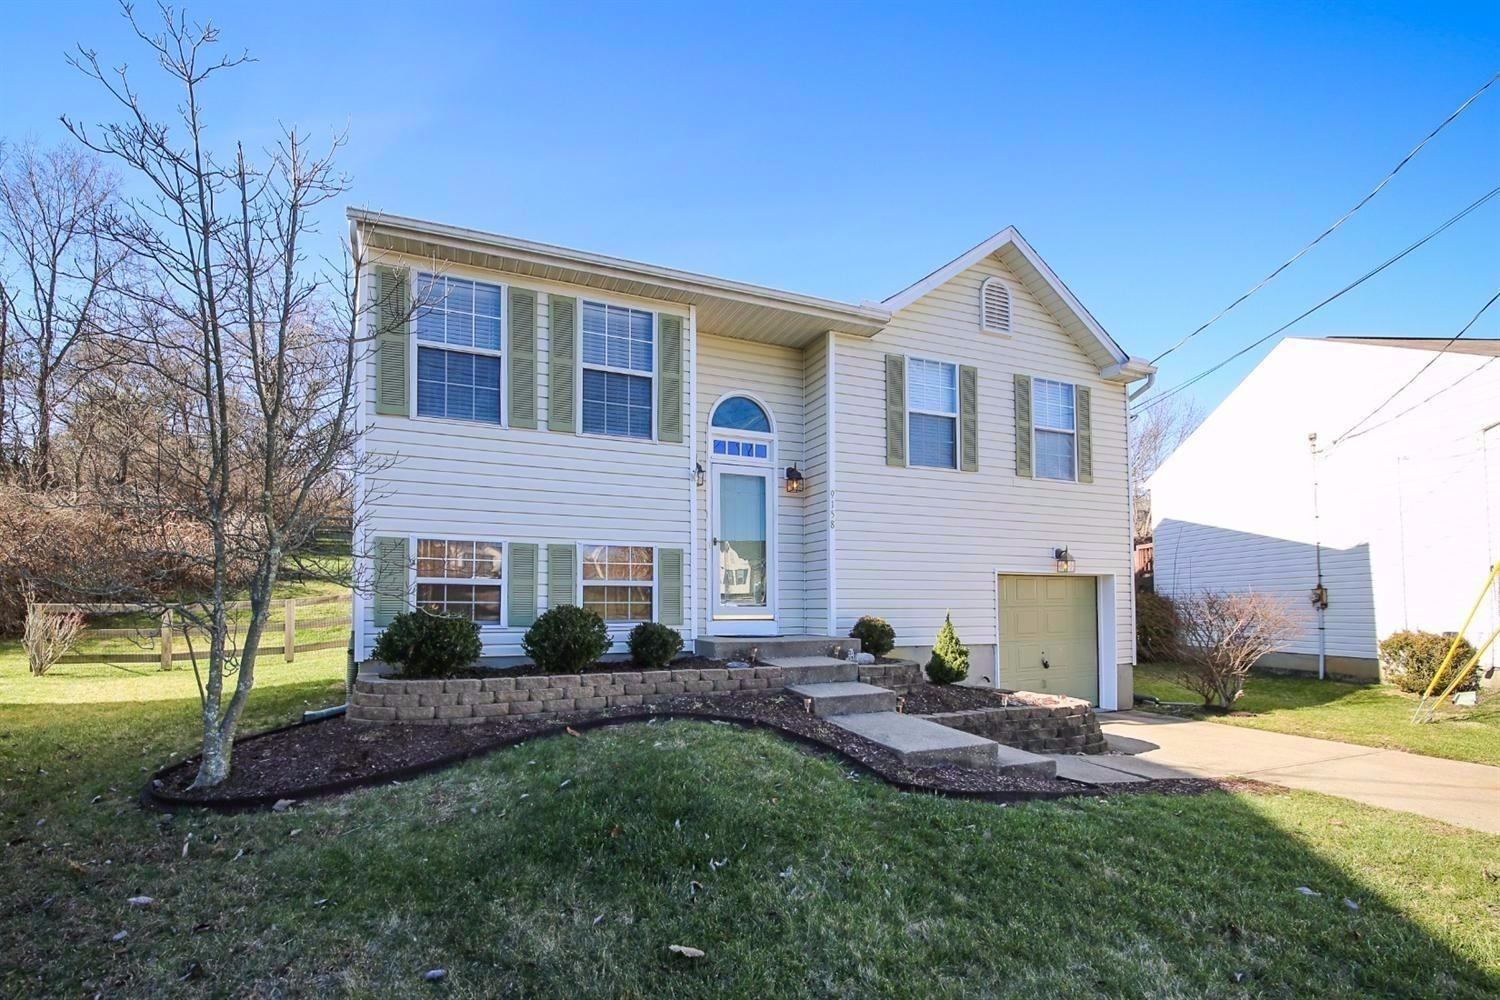 Photo 1 for 9158 Juniper Ln Covington, KY 41017